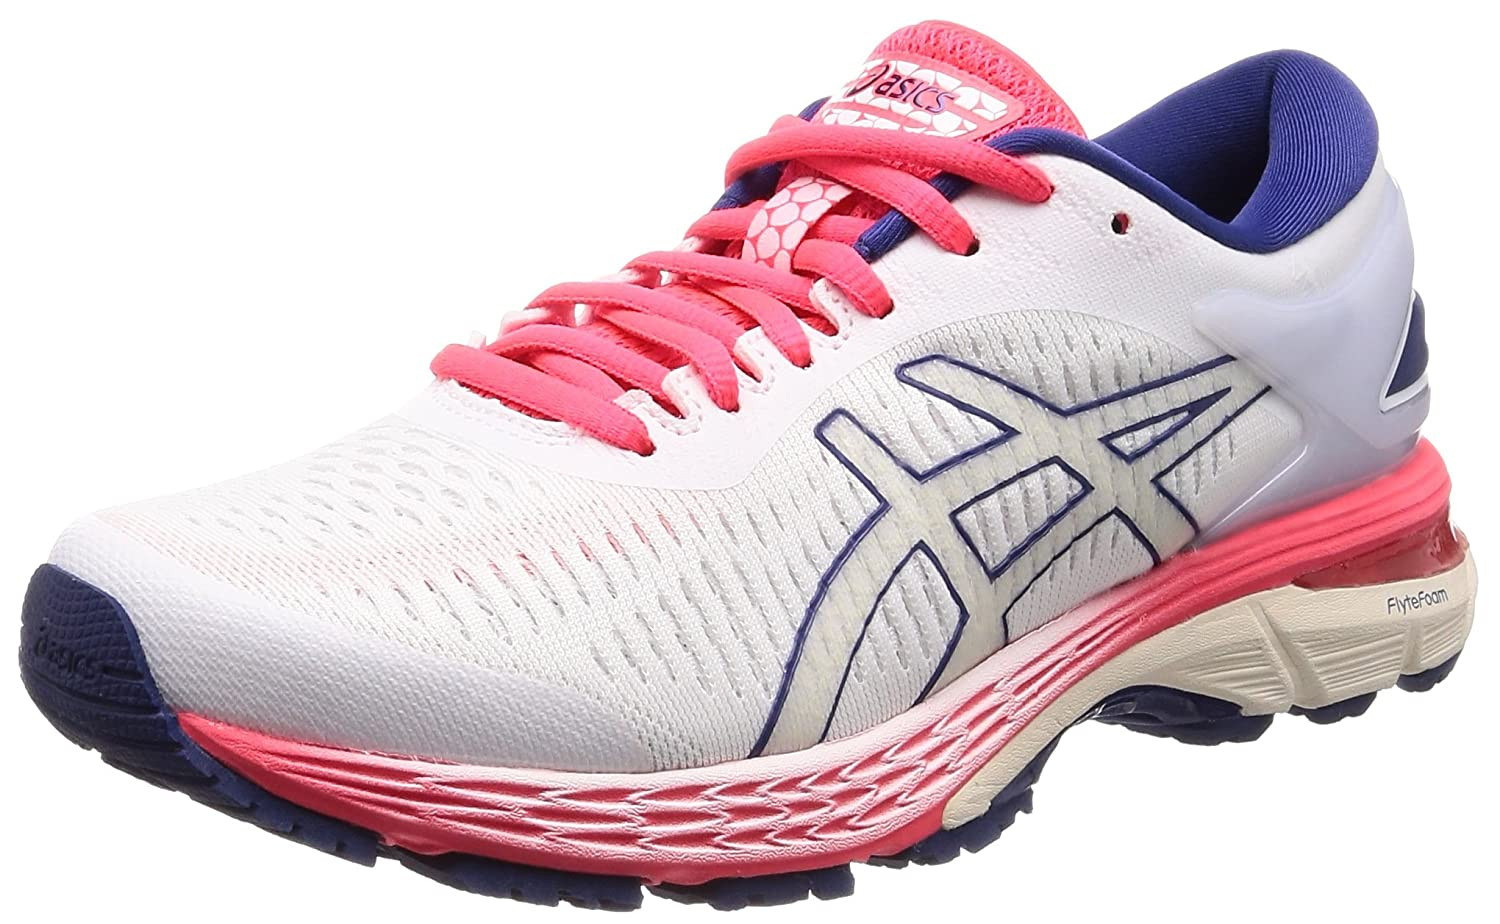 f3330d4564fc Amazon.com: Asics Gel-Kayano 25 D [1012A032-100] Women Running Shoes  White/Pink-Blue: Health & Personal Care